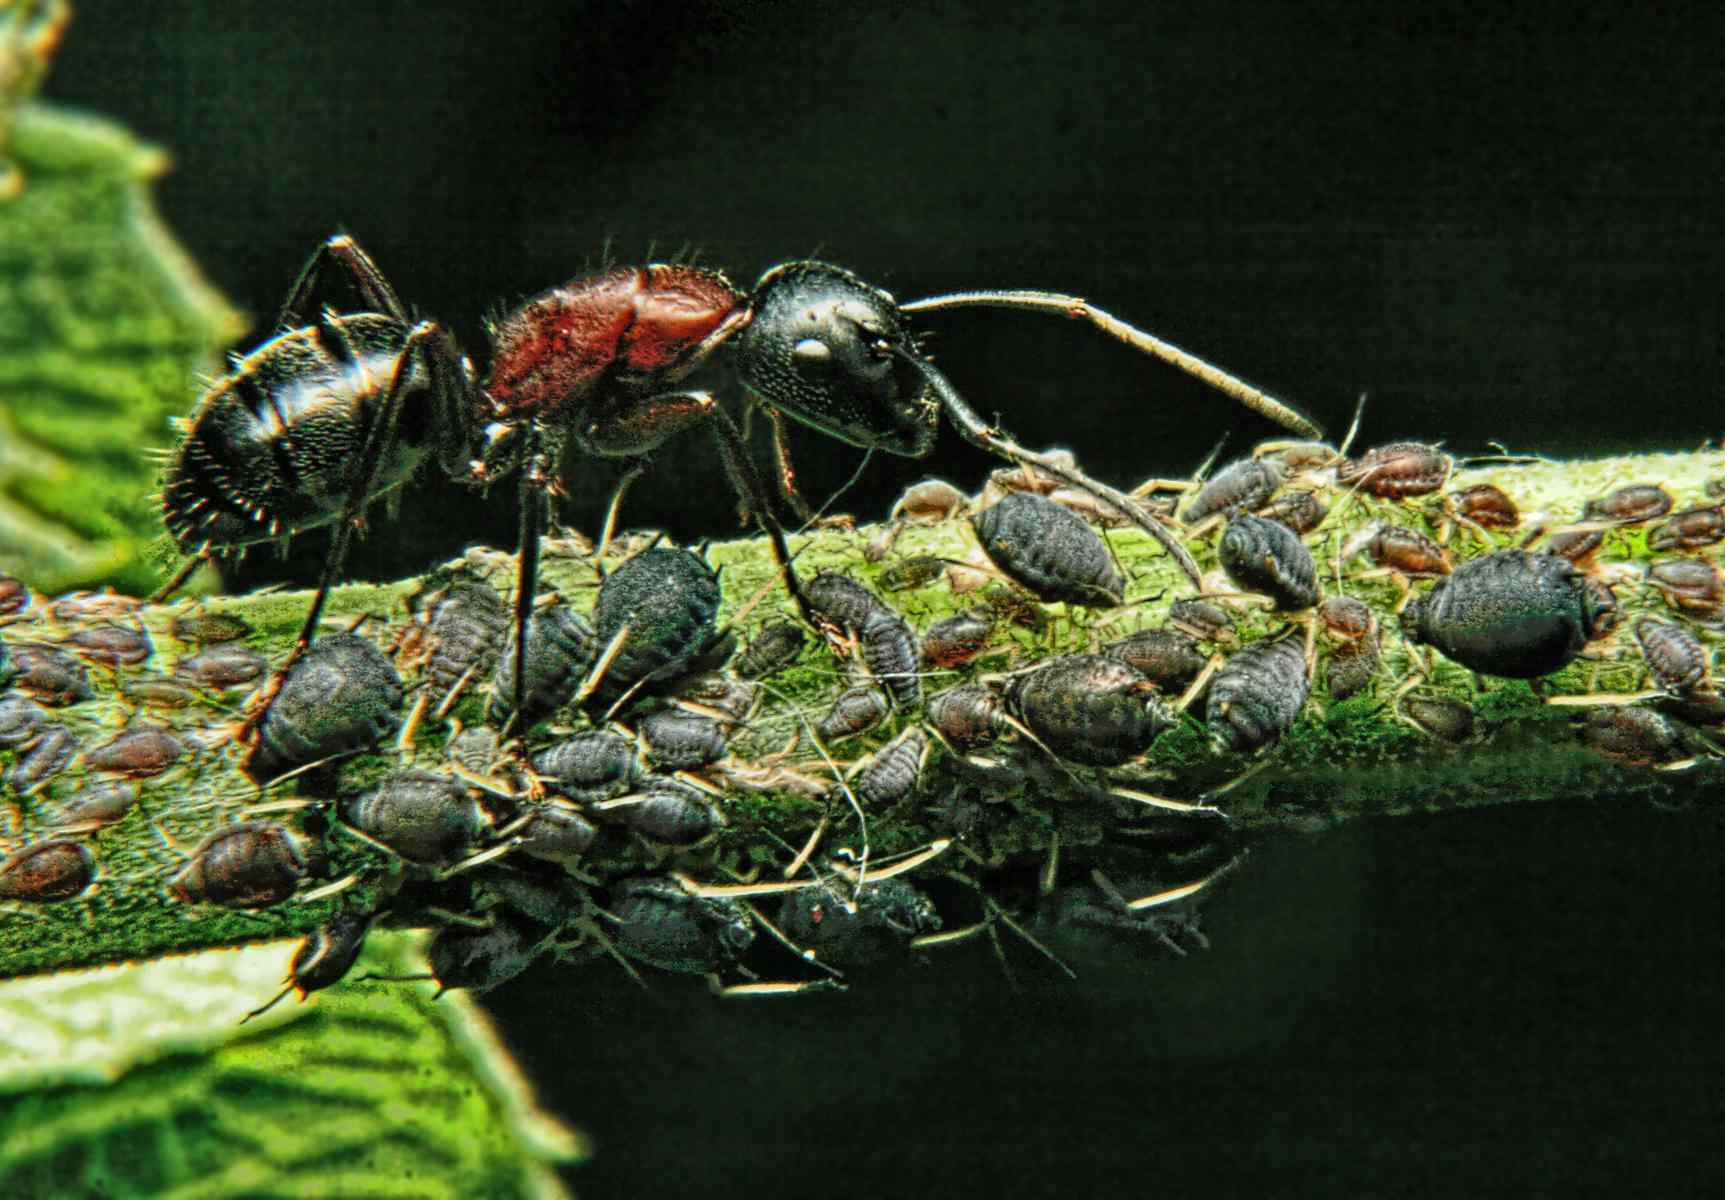 Ant tending aphids.